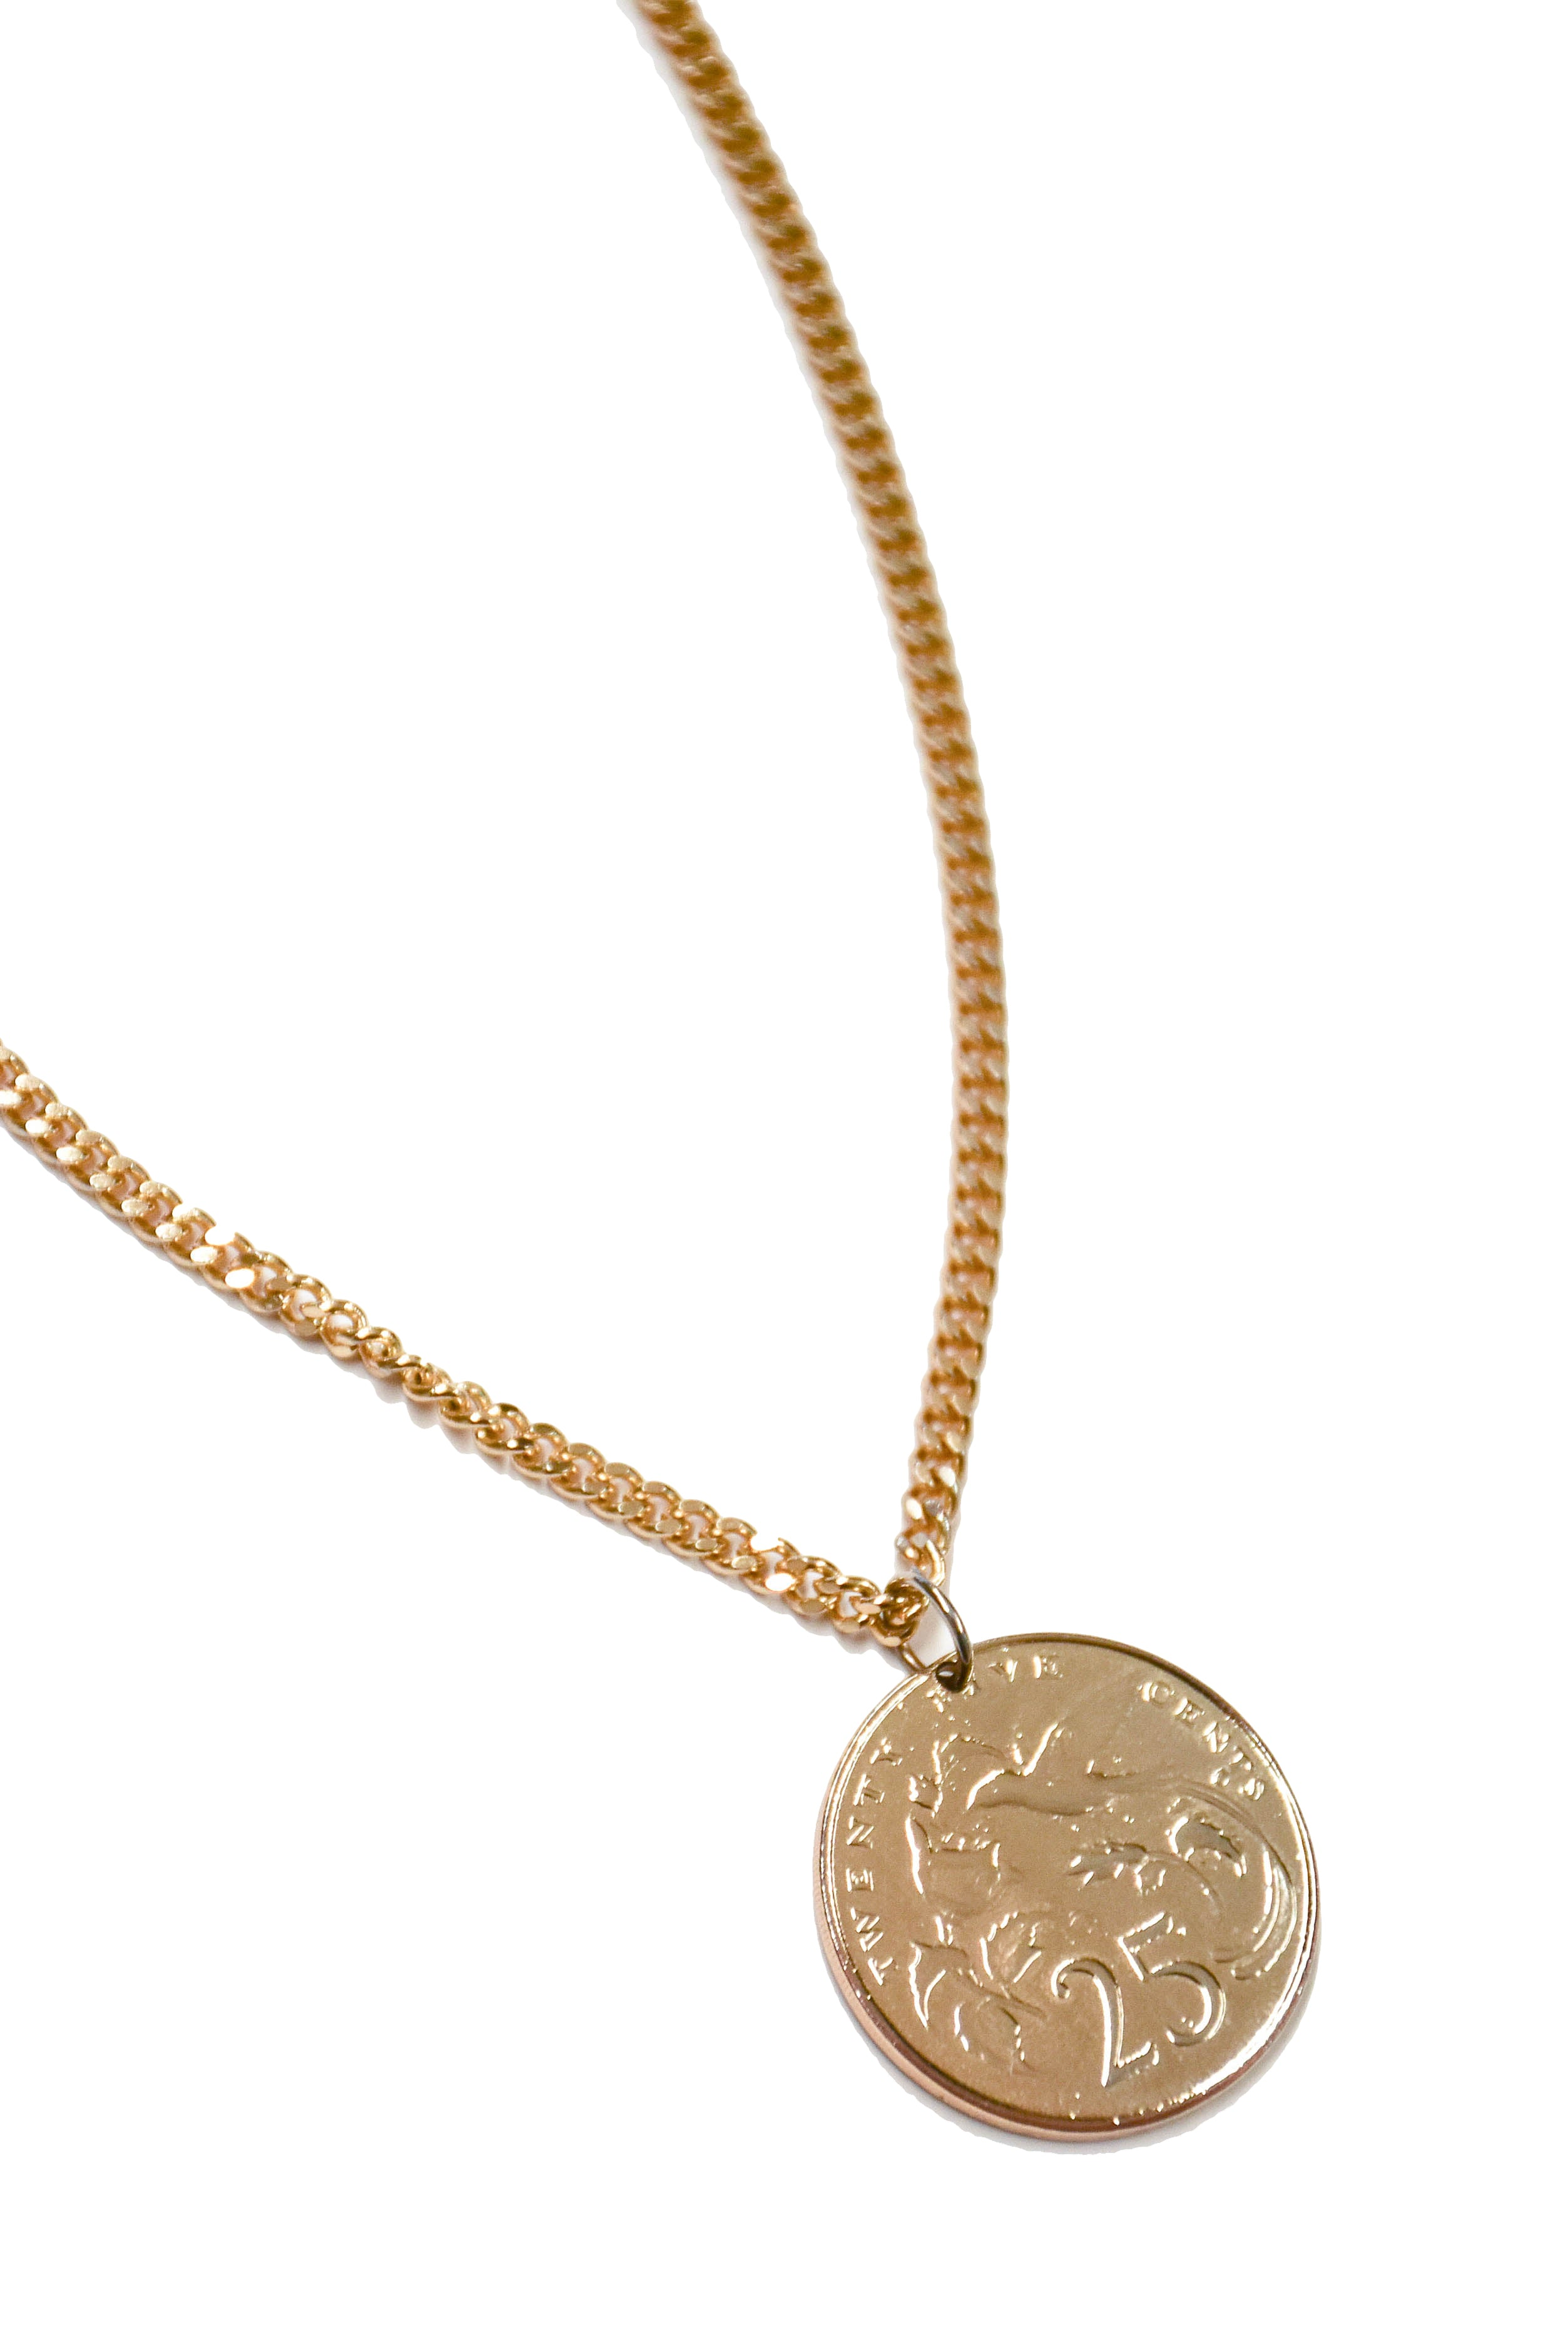 B. Alli Kaja Gold Coin Necklace